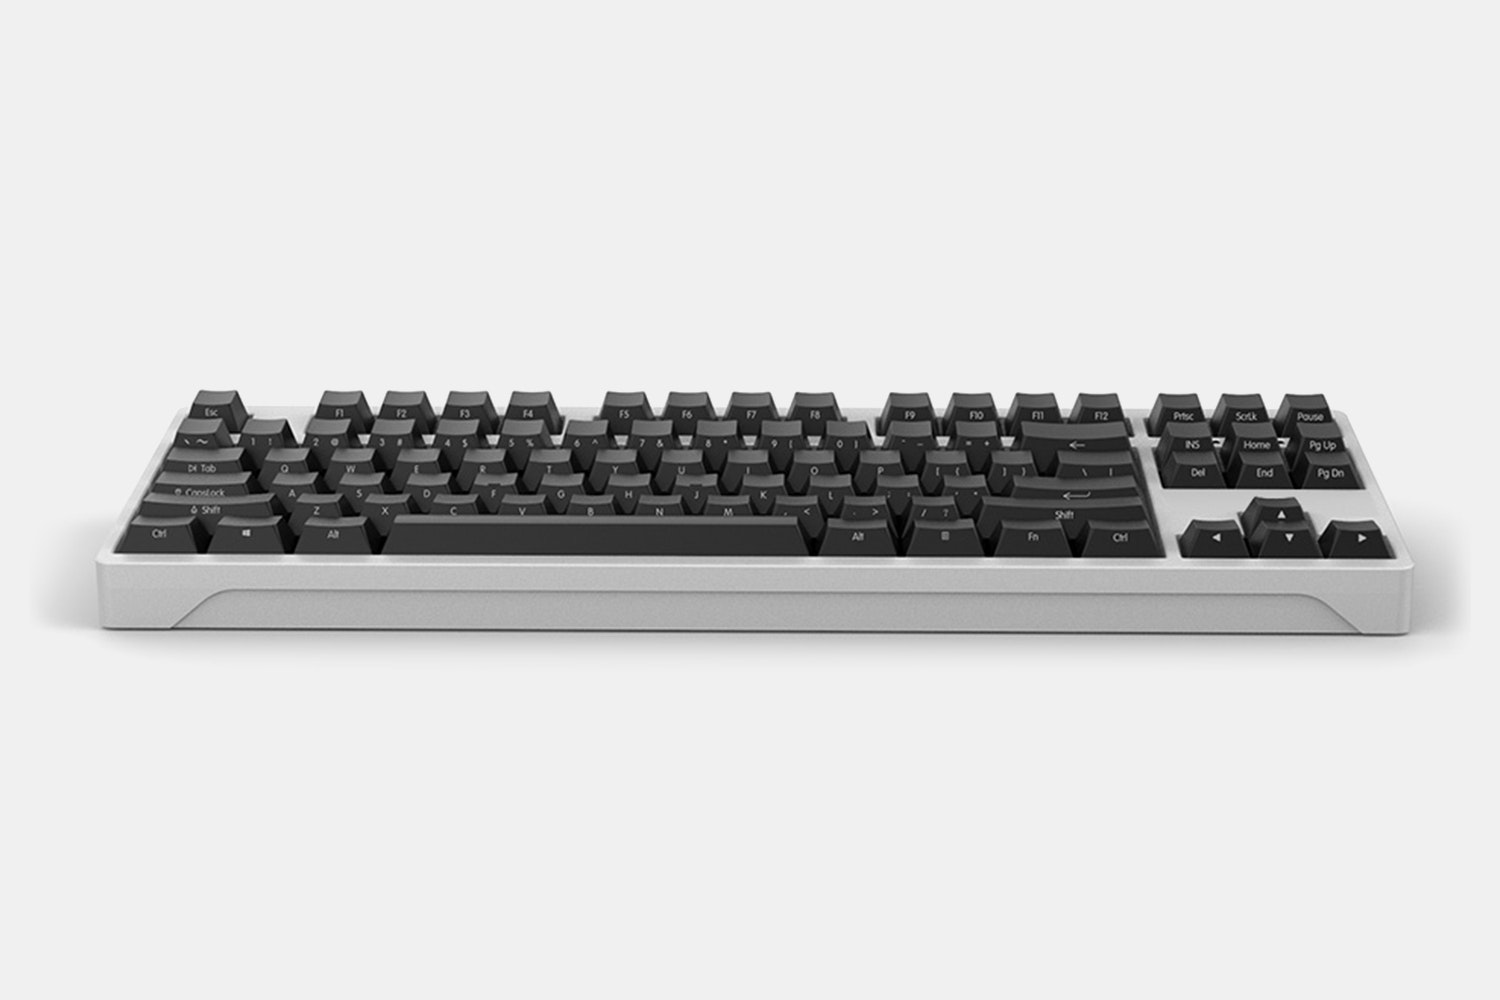 Lambo 80% Anodized Aluminum Case for Filco 87 TKL